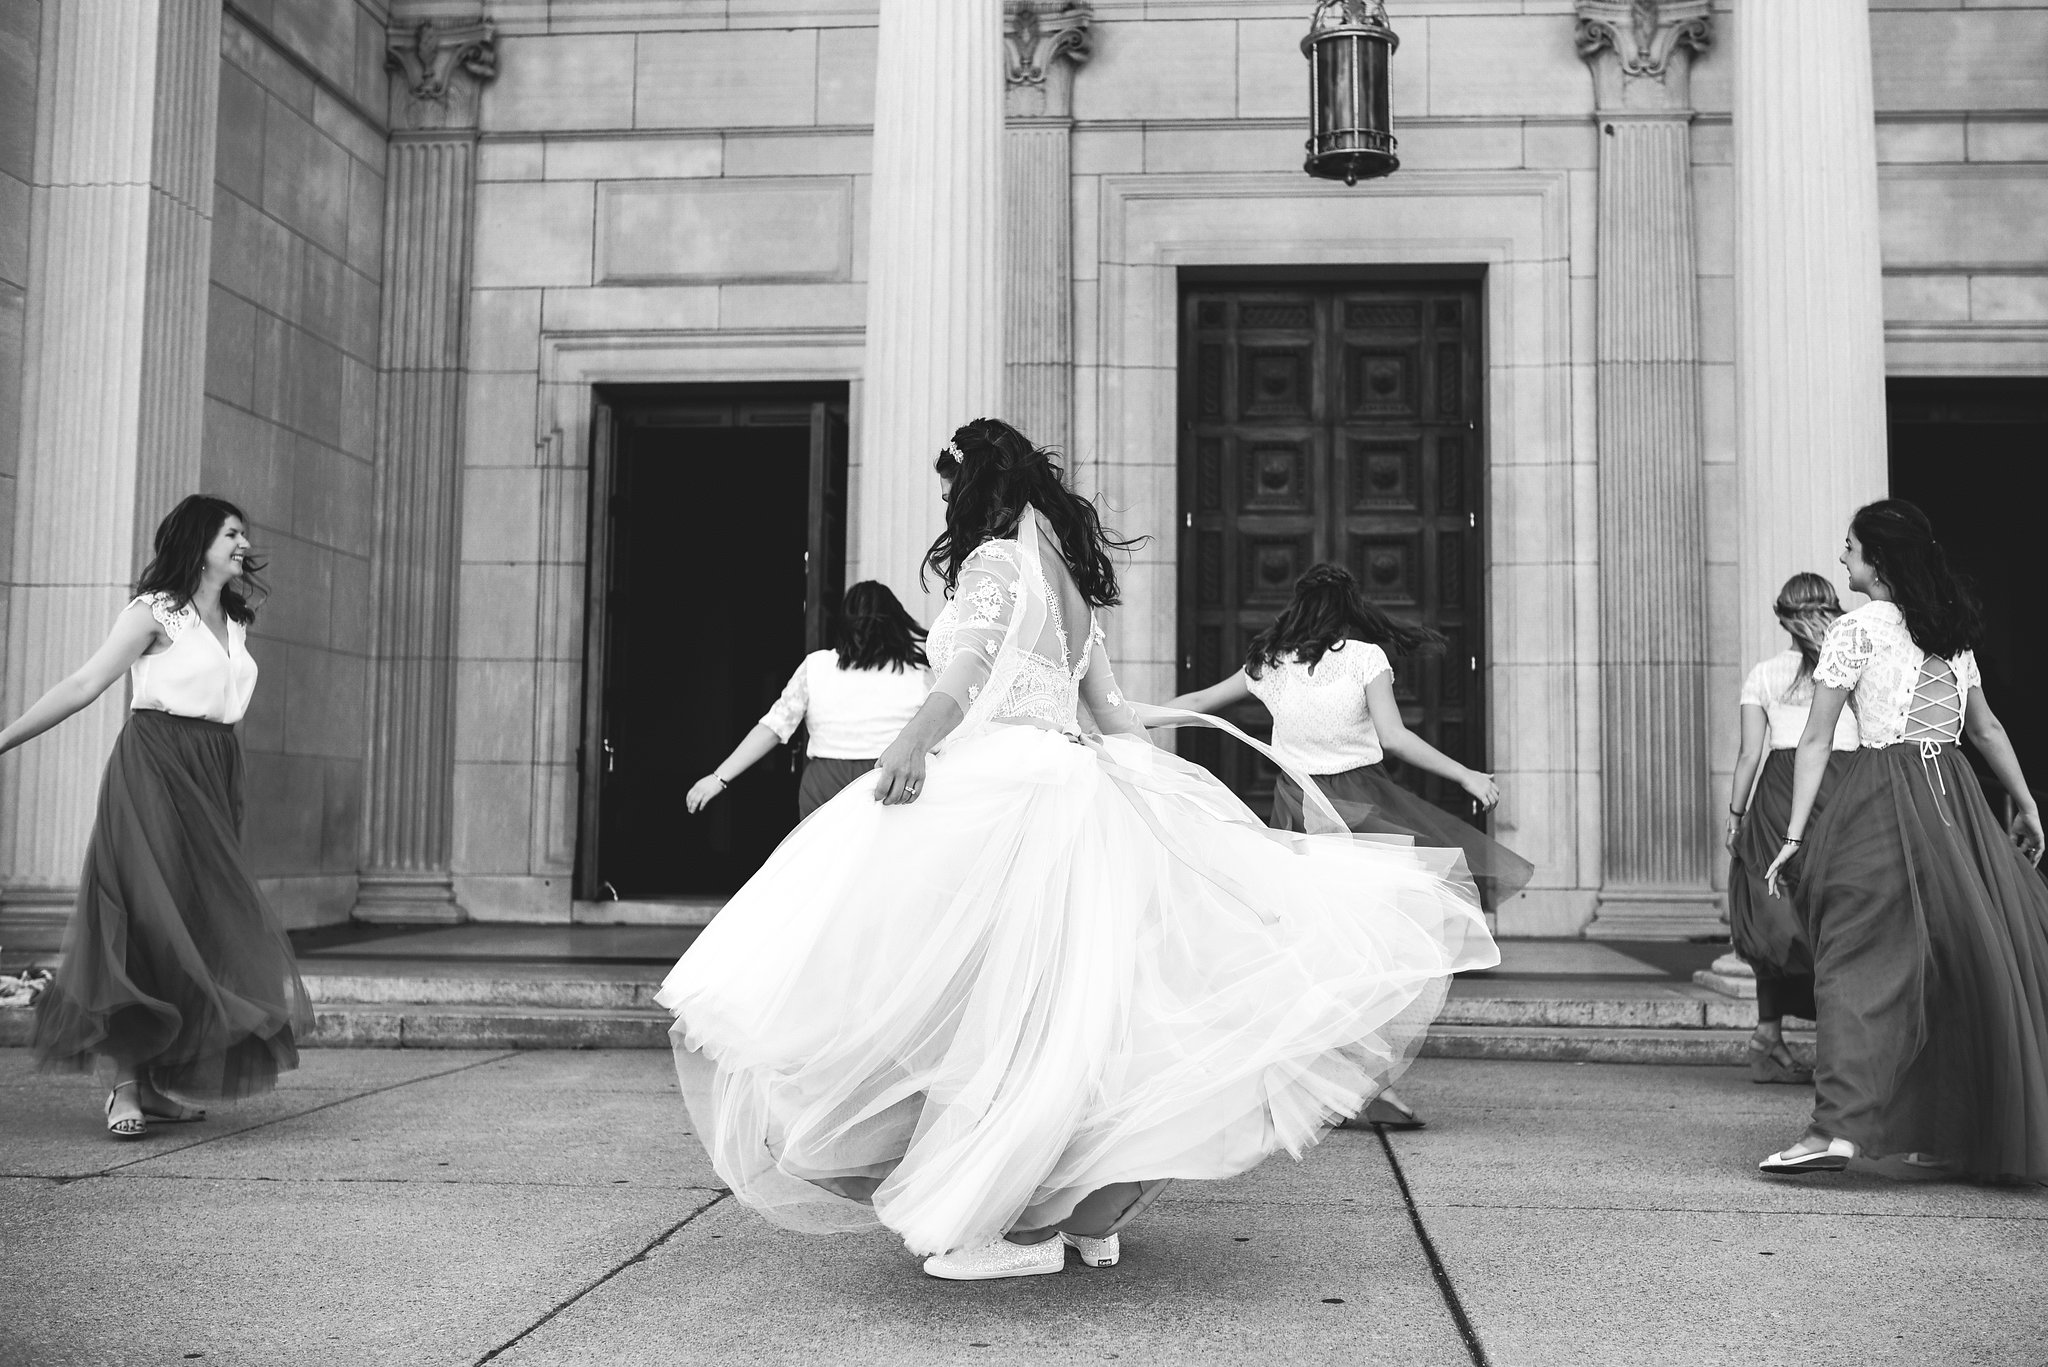 Baltimore, Canton, Church Wedding, Modern, Outdoors, Maryland Wedding Photographer, Romantic, Classic, Black and White Photo, Glittery Sneakers, Lace wedding dress, Bride and bridesmaids dancing on sidewalk